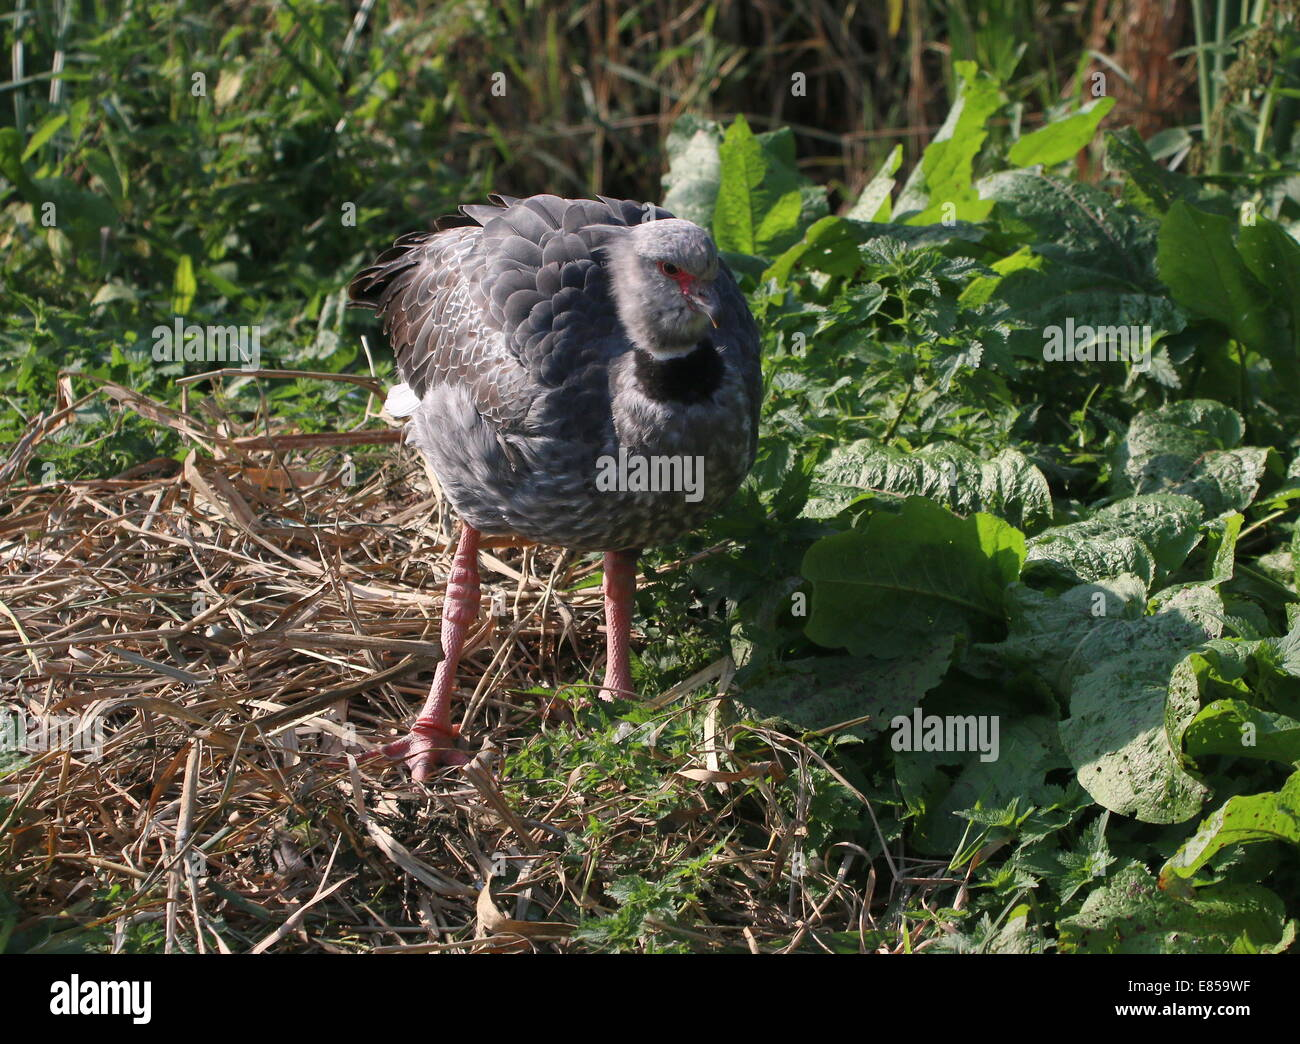 Close-up of the Southern or crested  Screamer (Chauna torquata) native to Brazil, Argentina and Uruguay - Stock Image